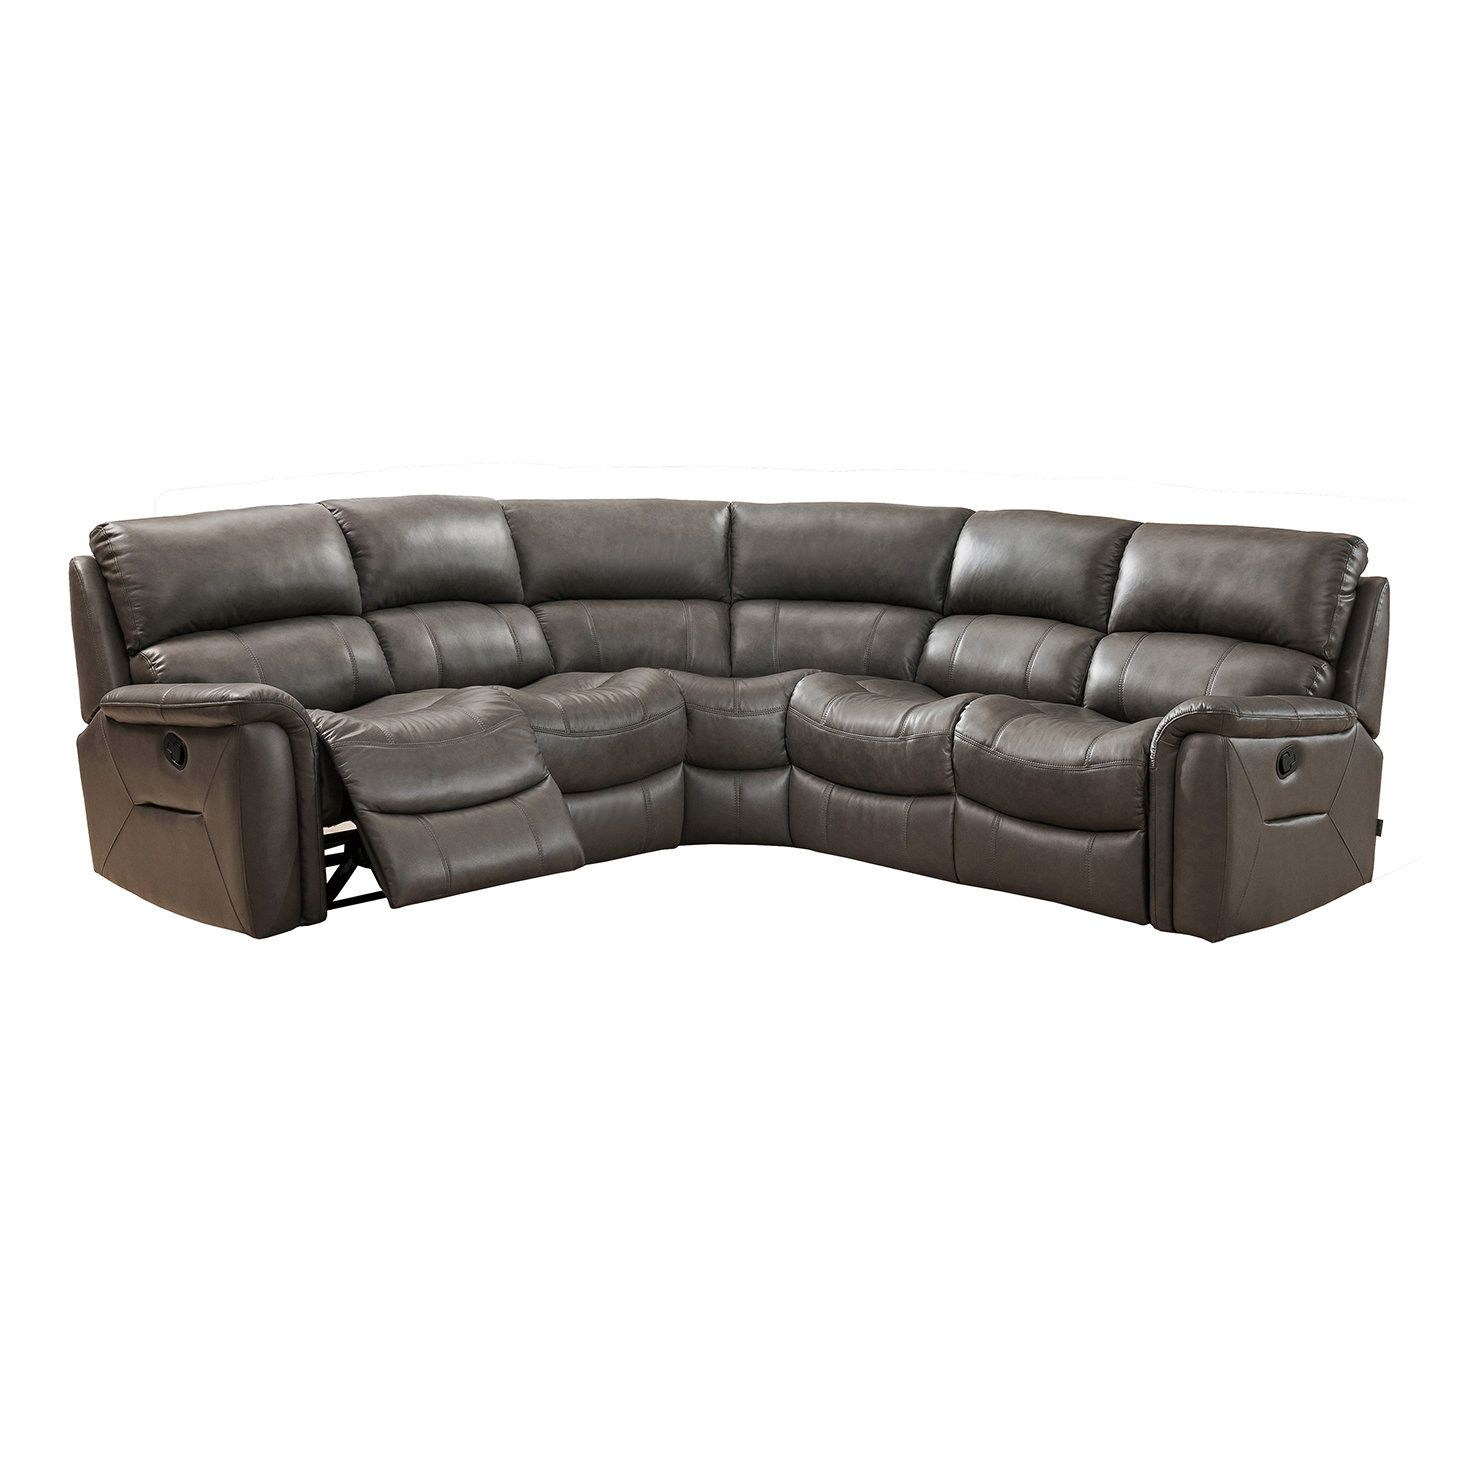 Forbes Leather Reclining Sectional SUGARLOAF FURNITURE